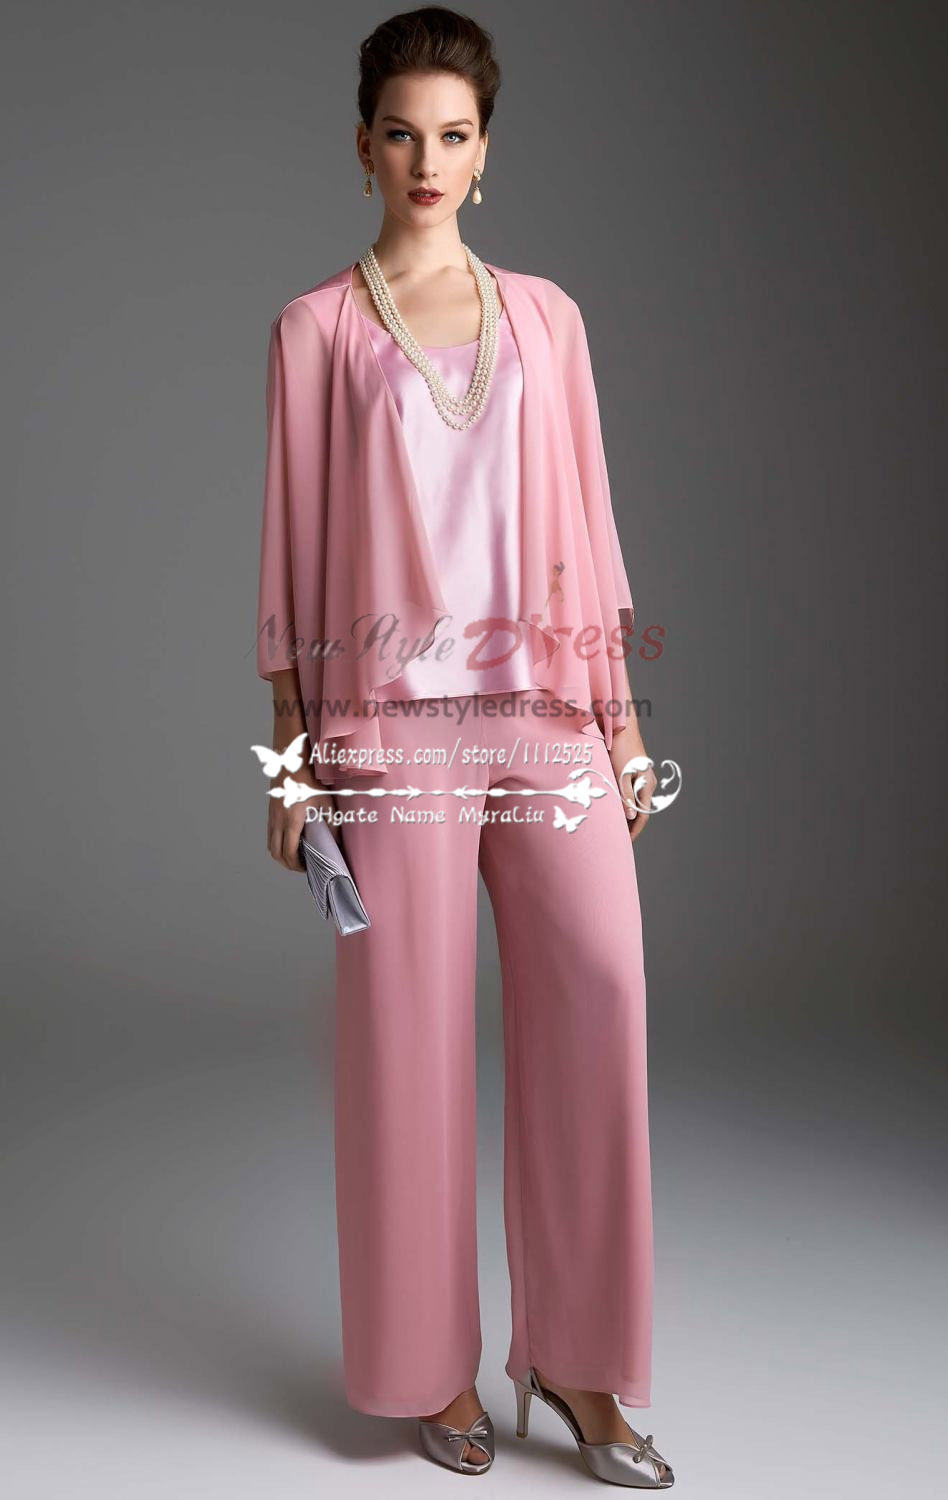 Bridal Pant Suits for Mother's